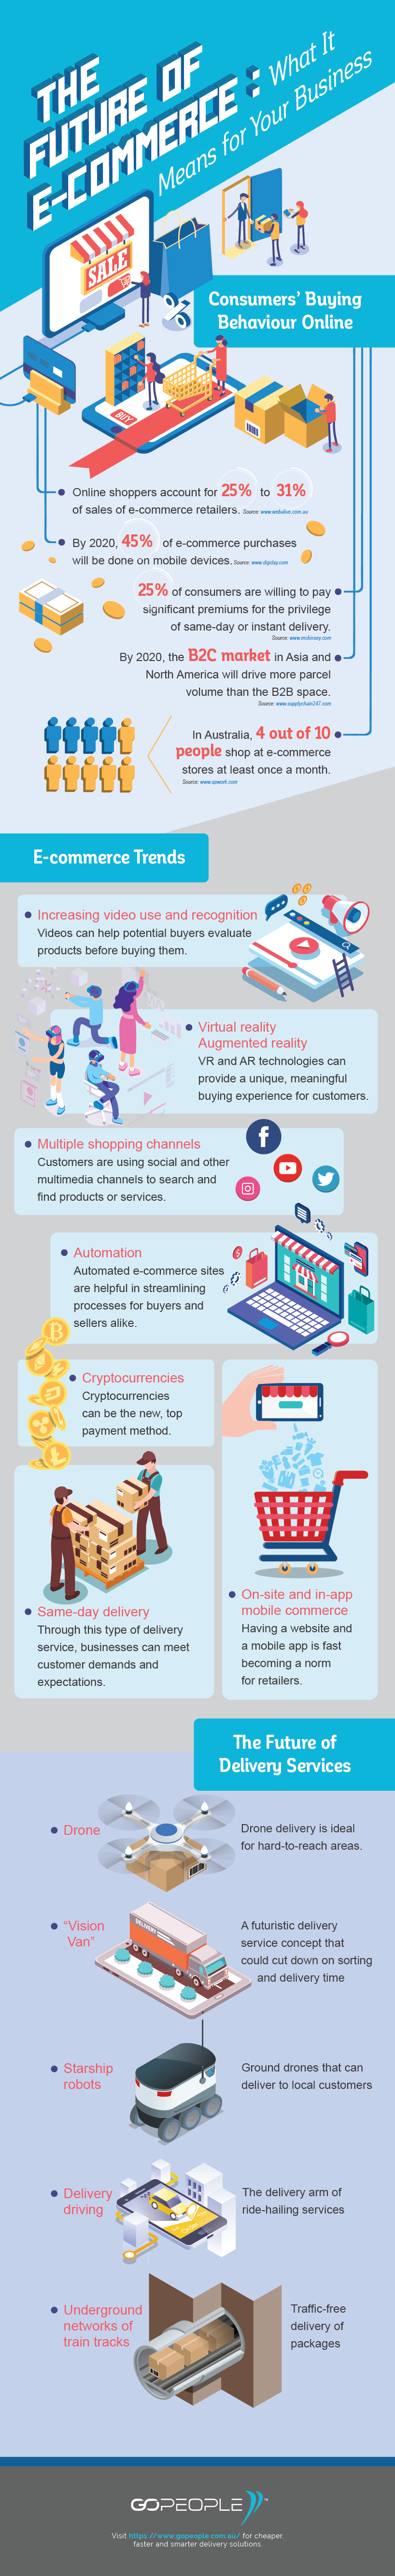 New Infographic on E-Commerce's Future